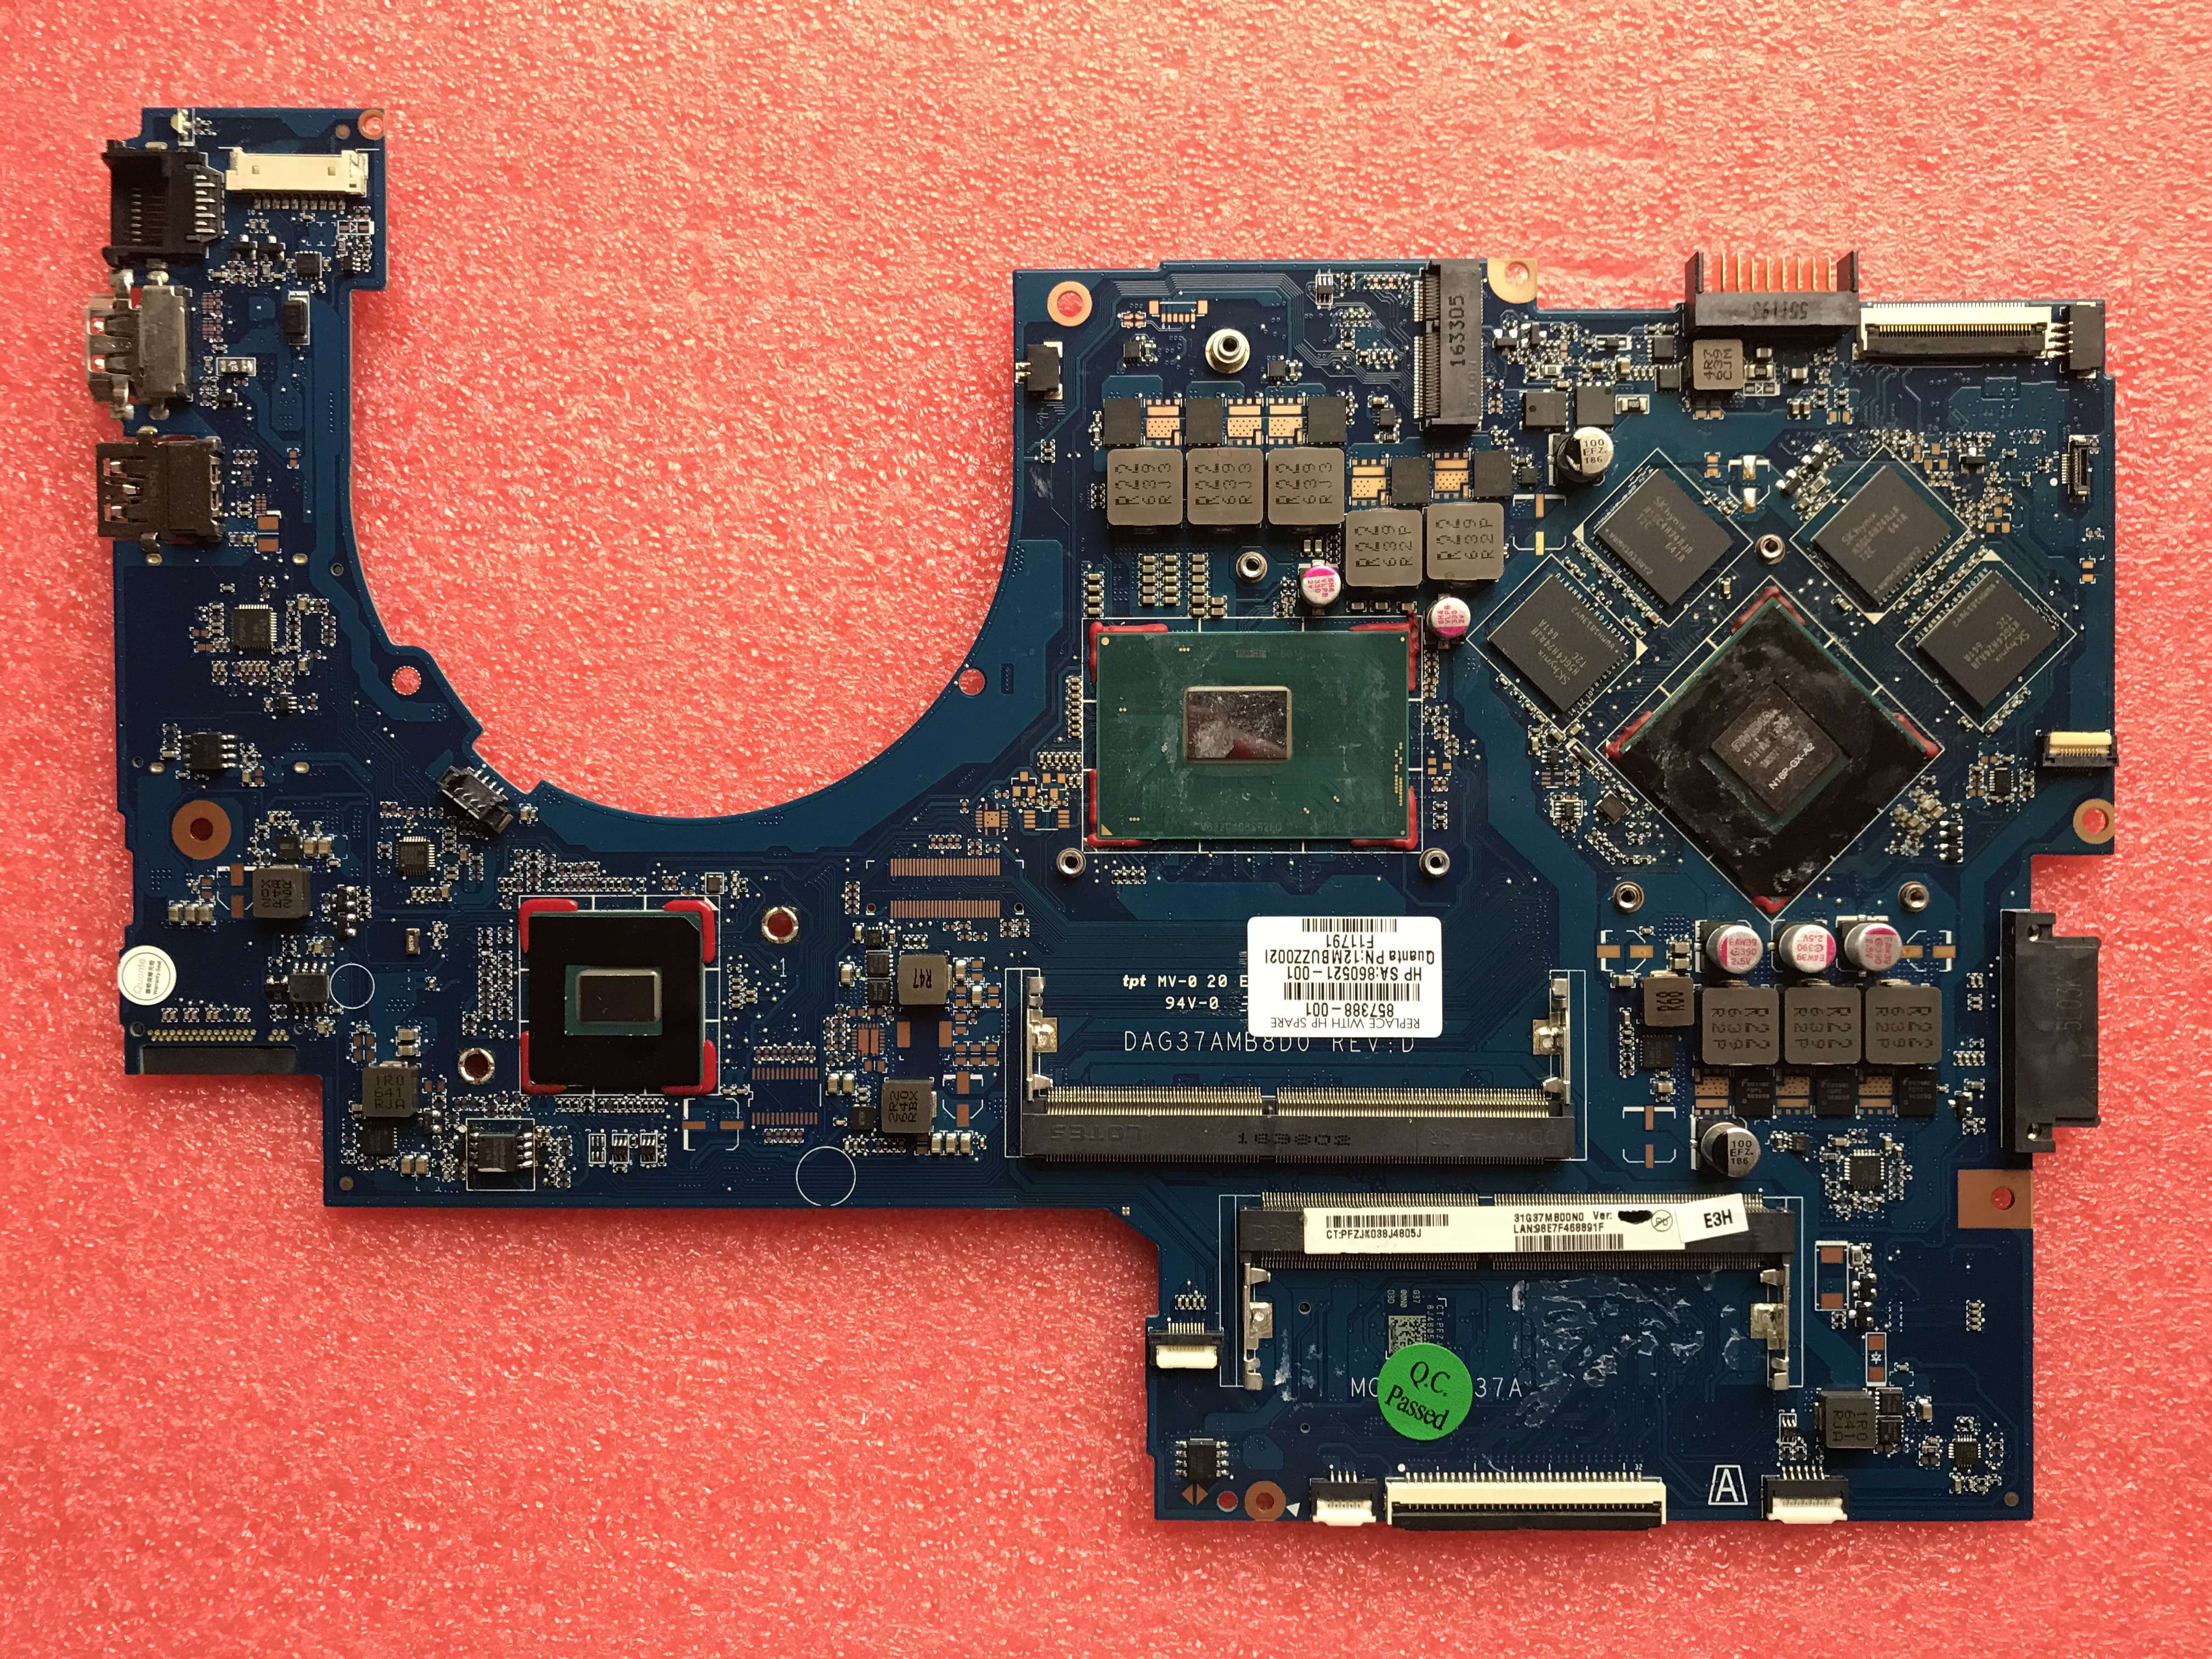 [gift mask] 857388-601 857388-501 857388-001 For HP 17-AB 17-W Laptop Motherboard DAG37AMB8D0 <font><b>SR2FQ</b></font> <font><b>i7</b></font>-<font><b>6700HQ</b></font> CPU GTX 960M image